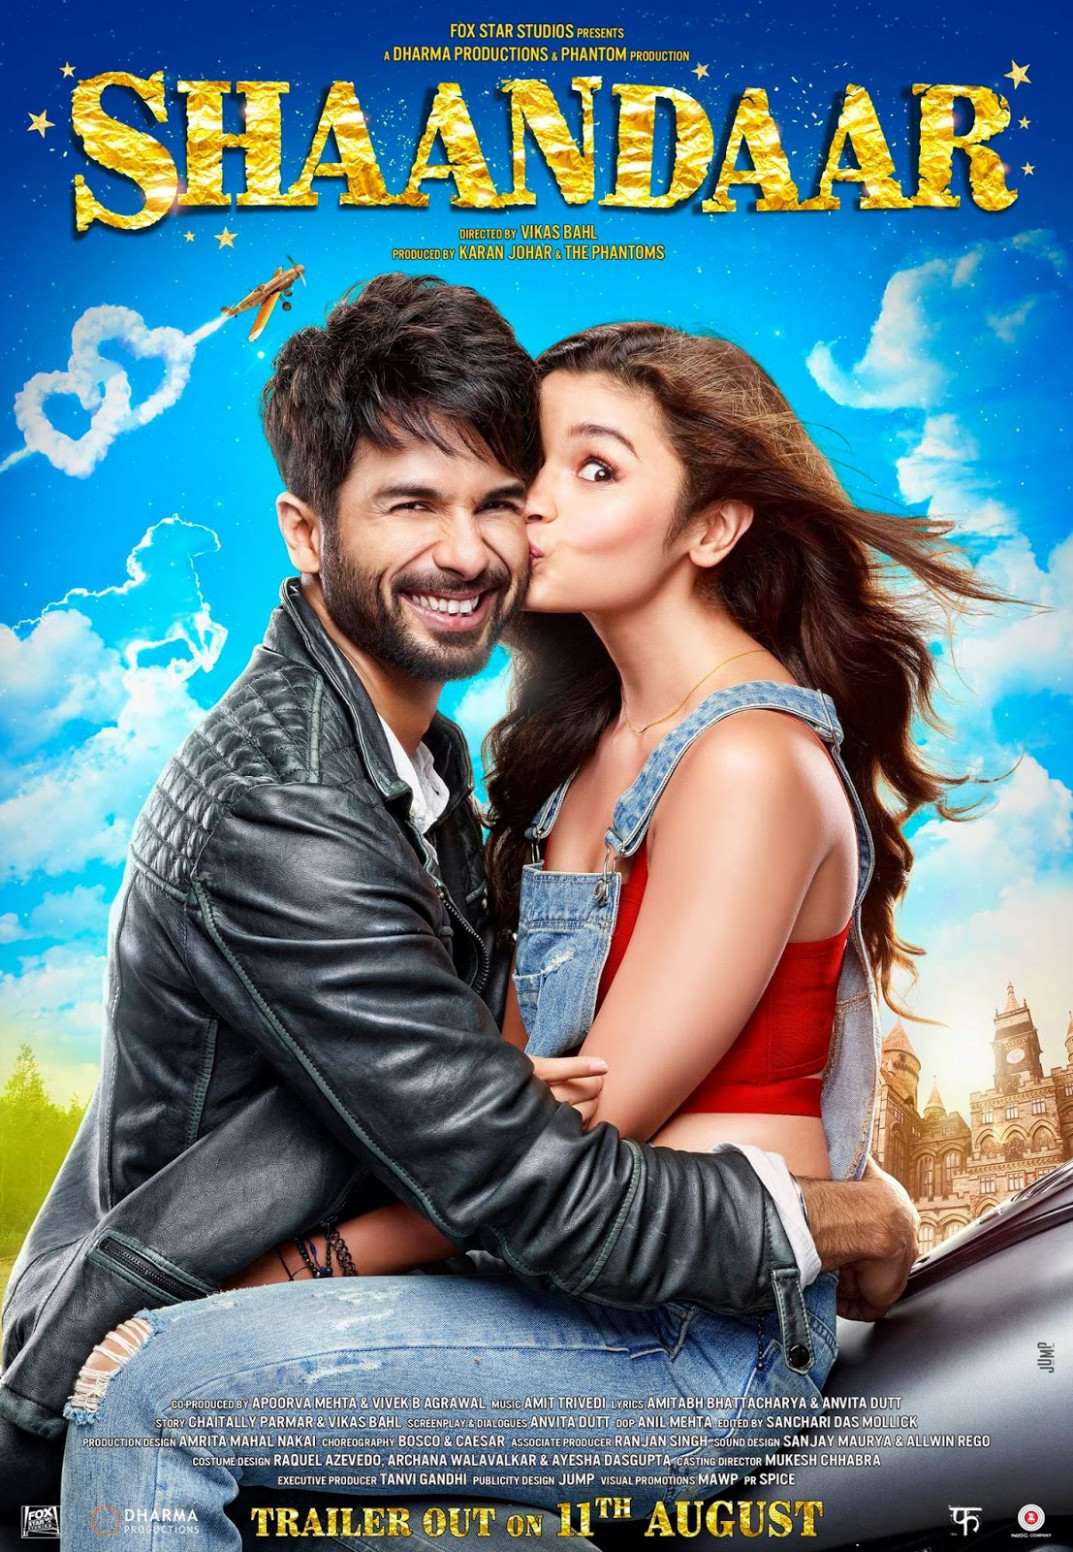 Shaandaar (2015) full Movie Download in hd free